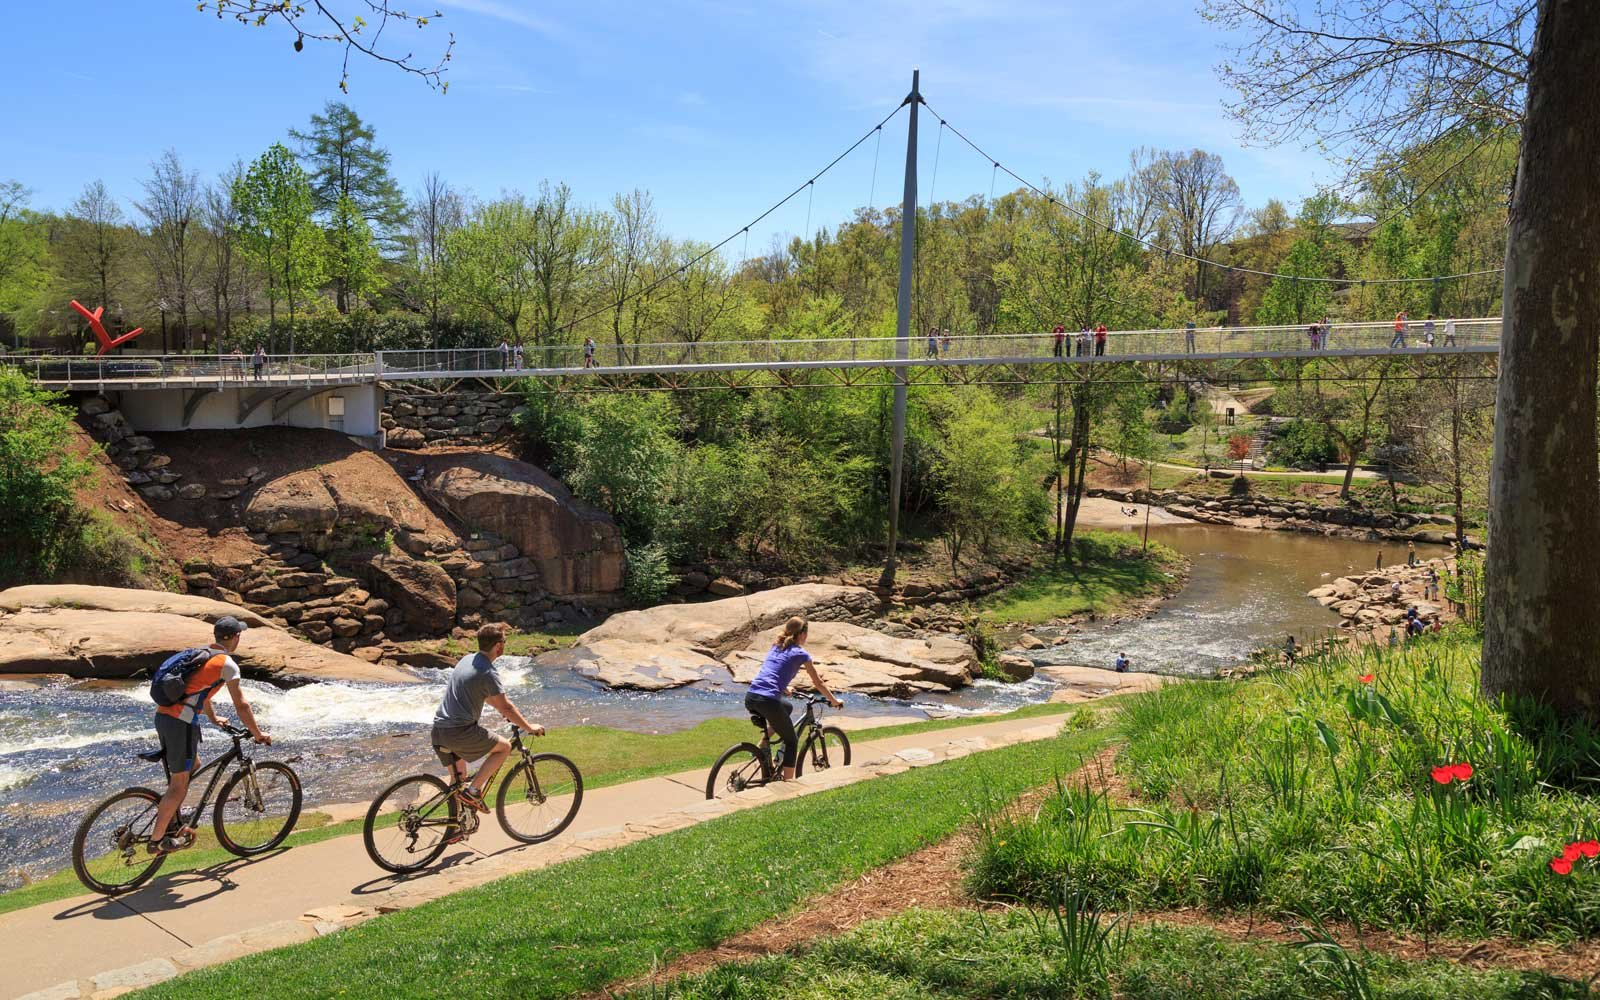 Liberty Bridge with Bikers on Path, Greenville, South Carolina